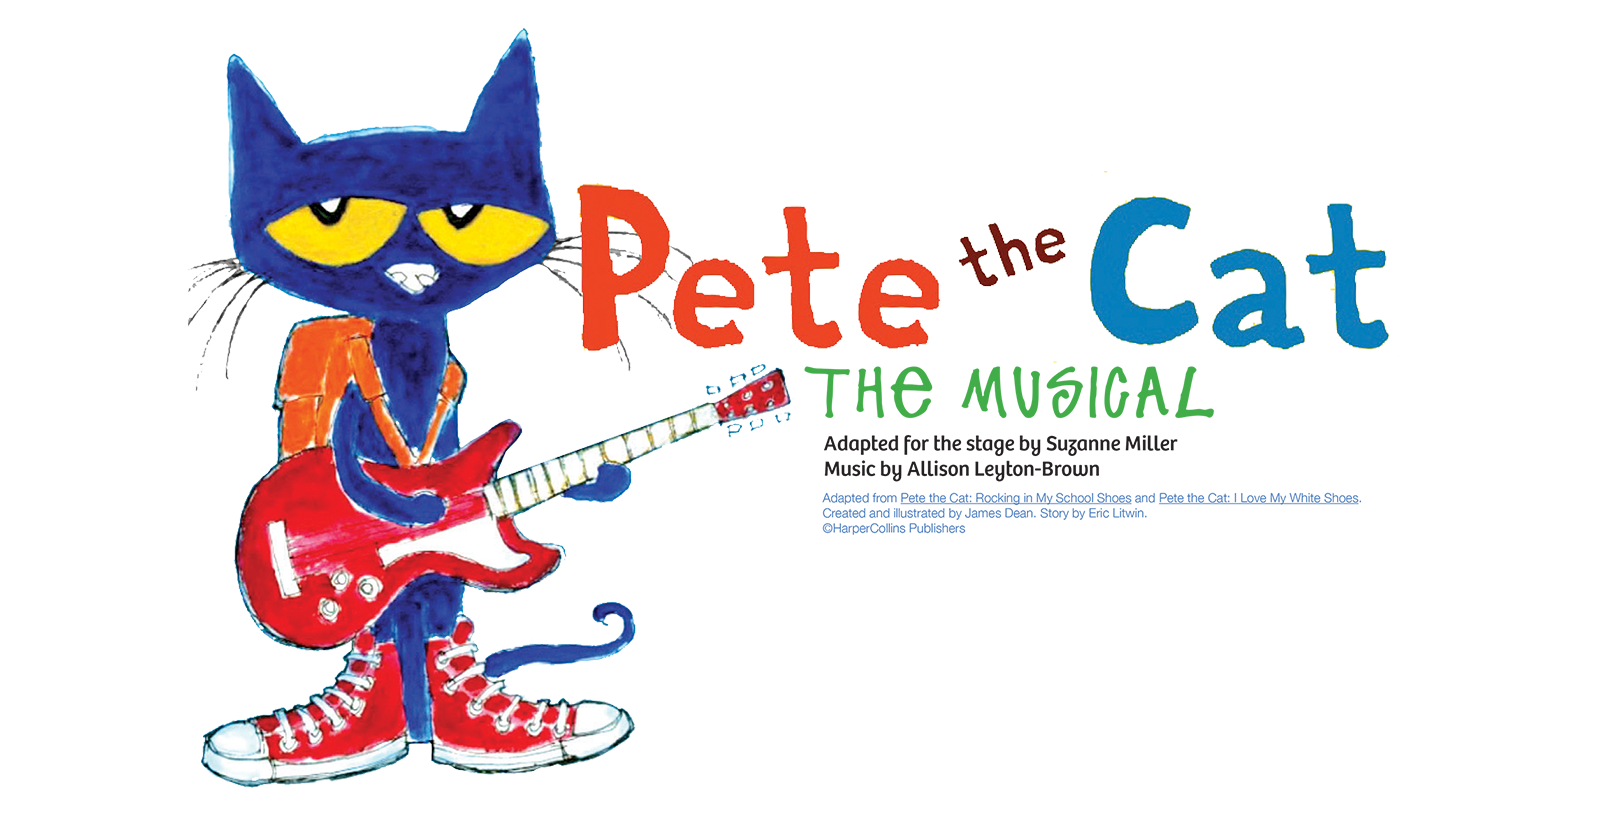 Pete the cat boogie cat clipart graphic library stock Pete The Cat: The Musical | The Rose Theater graphic library stock